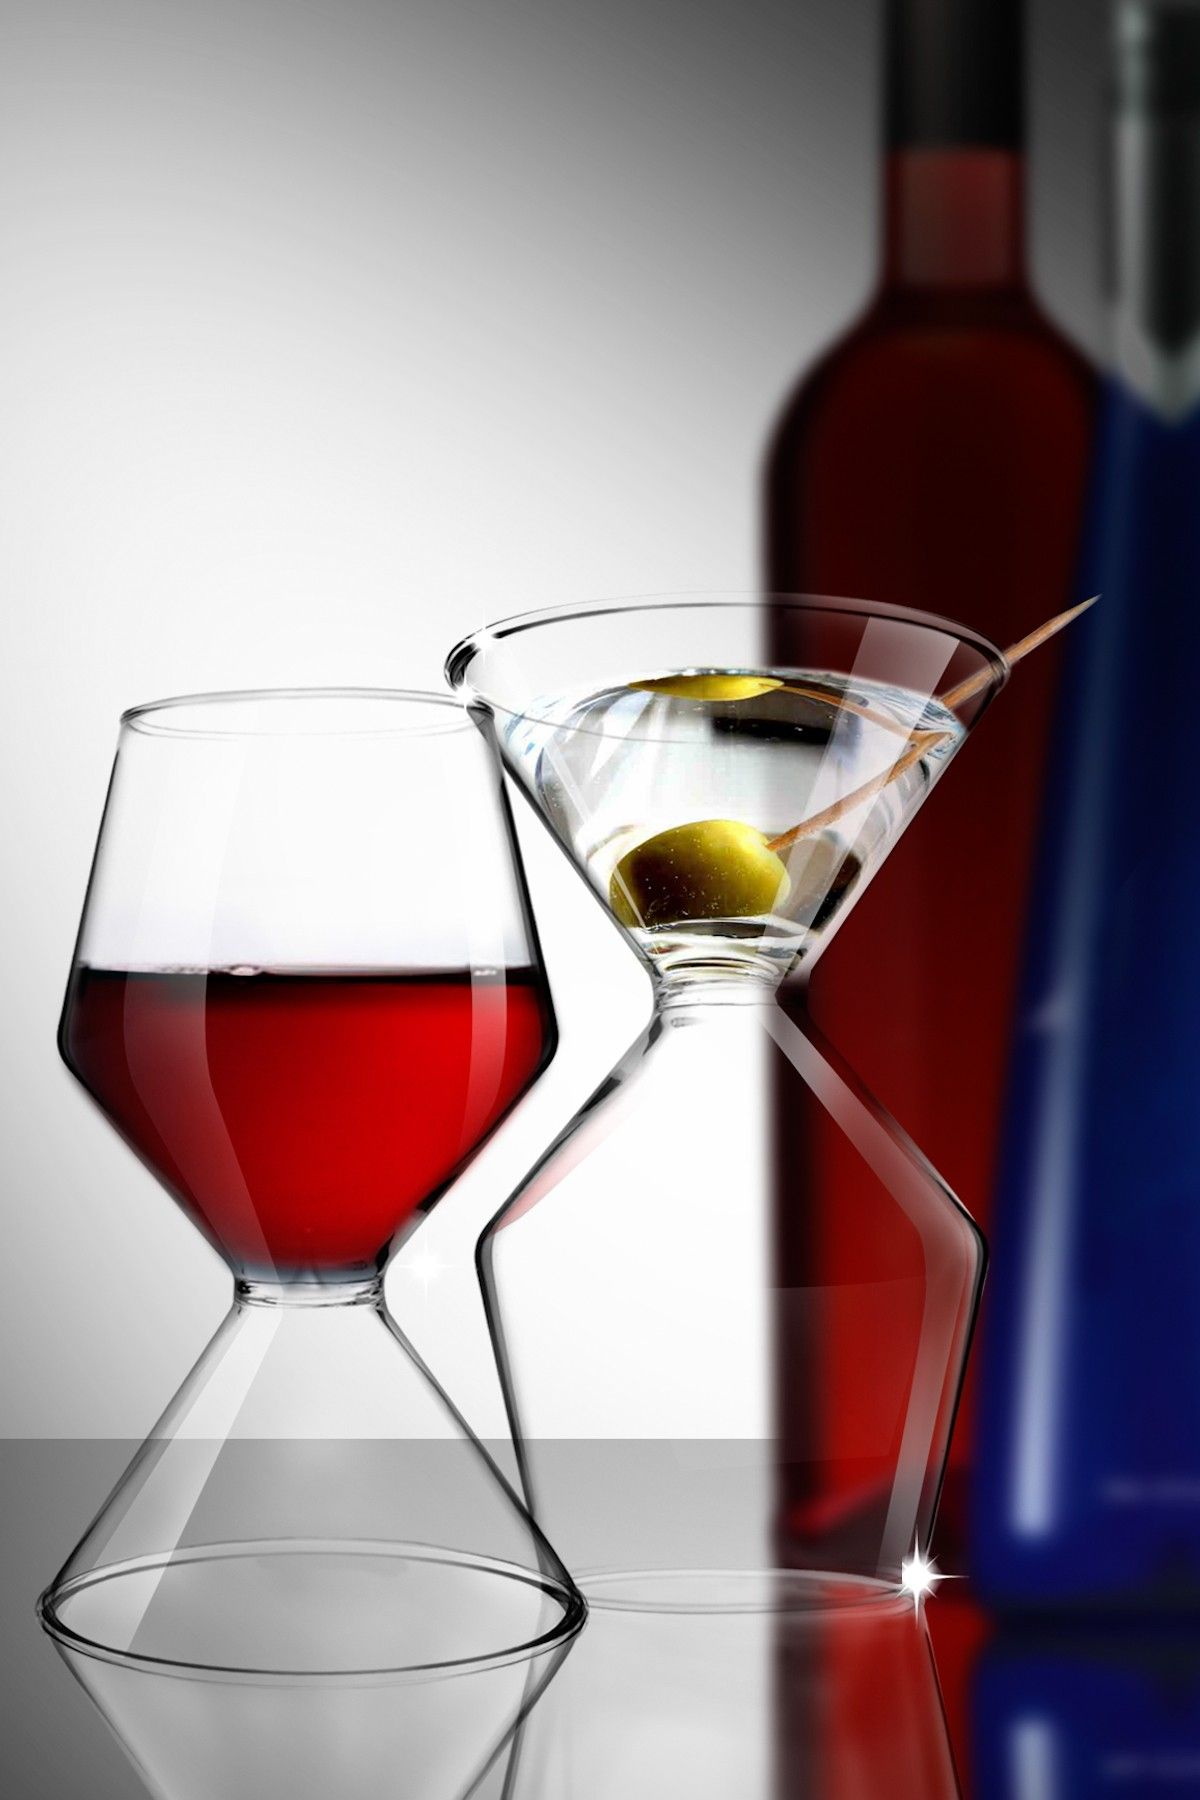 A Wine And Martini Glass In One Just Turn It To Switch Brilliant Idea Product Design With Images Martini Wine Wine Glass